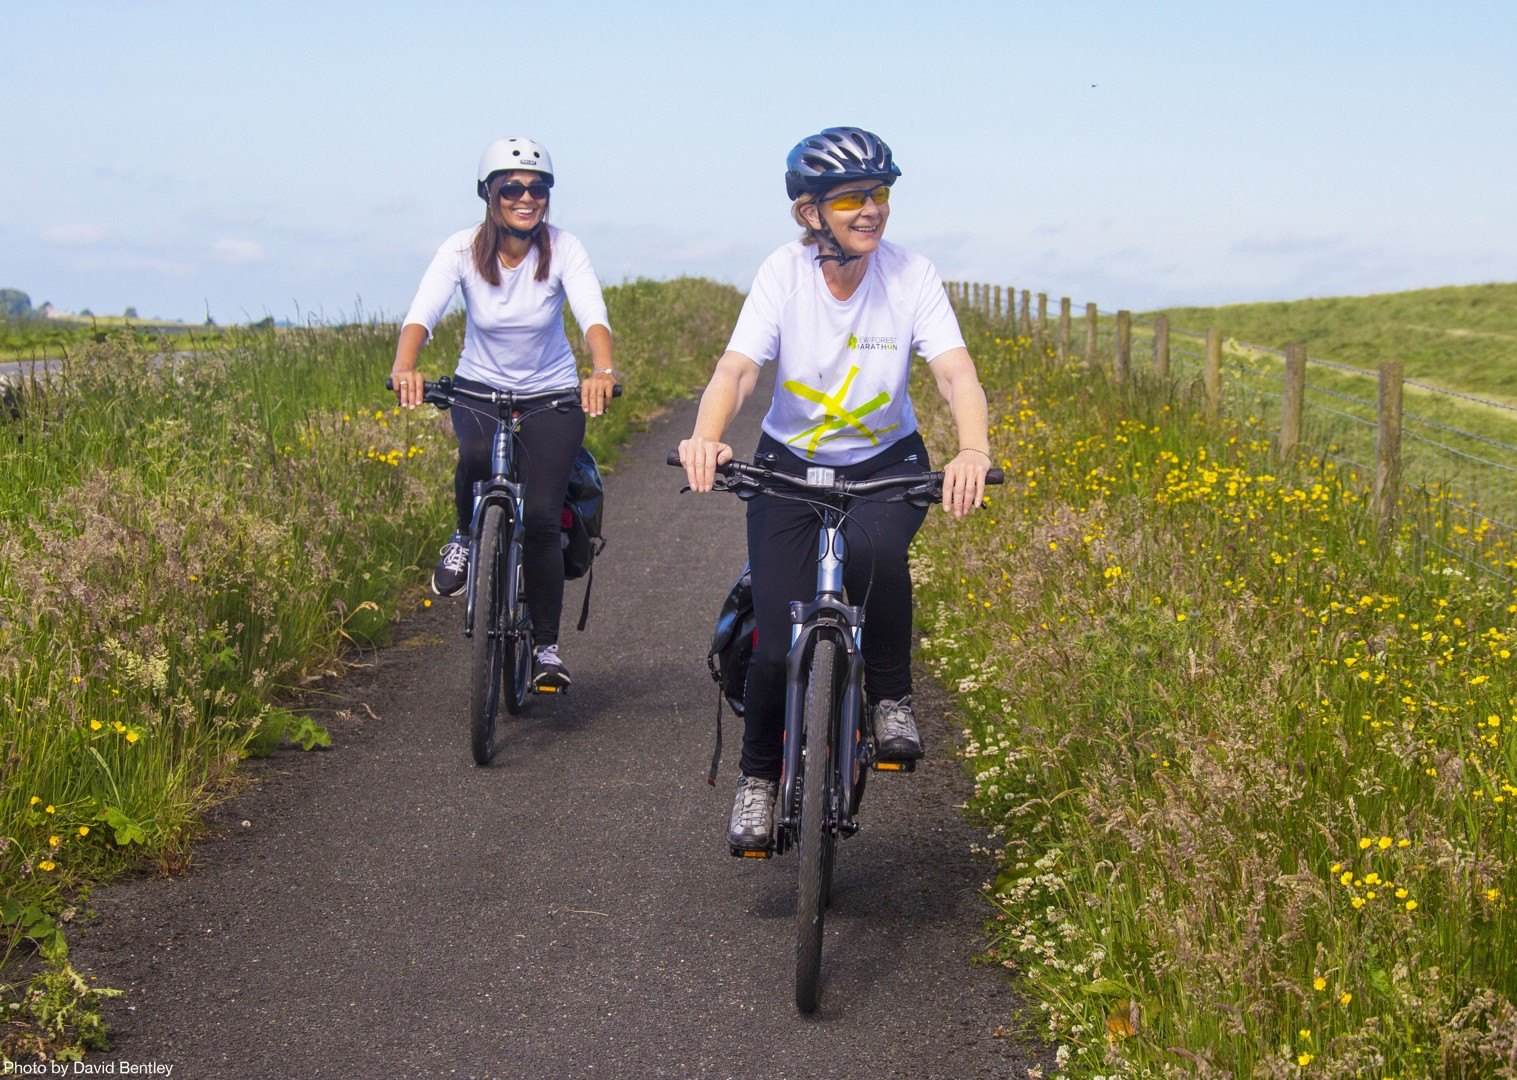 Hadrians-Cycleway-Self-Guided-Leisure-Cycling-Holiday-North-Pennines .jpg - UK - Hadrian's Cycleway - 3 Days Cycling - Self-Guided Leisure Cycling Holiday - Leisure Cycling